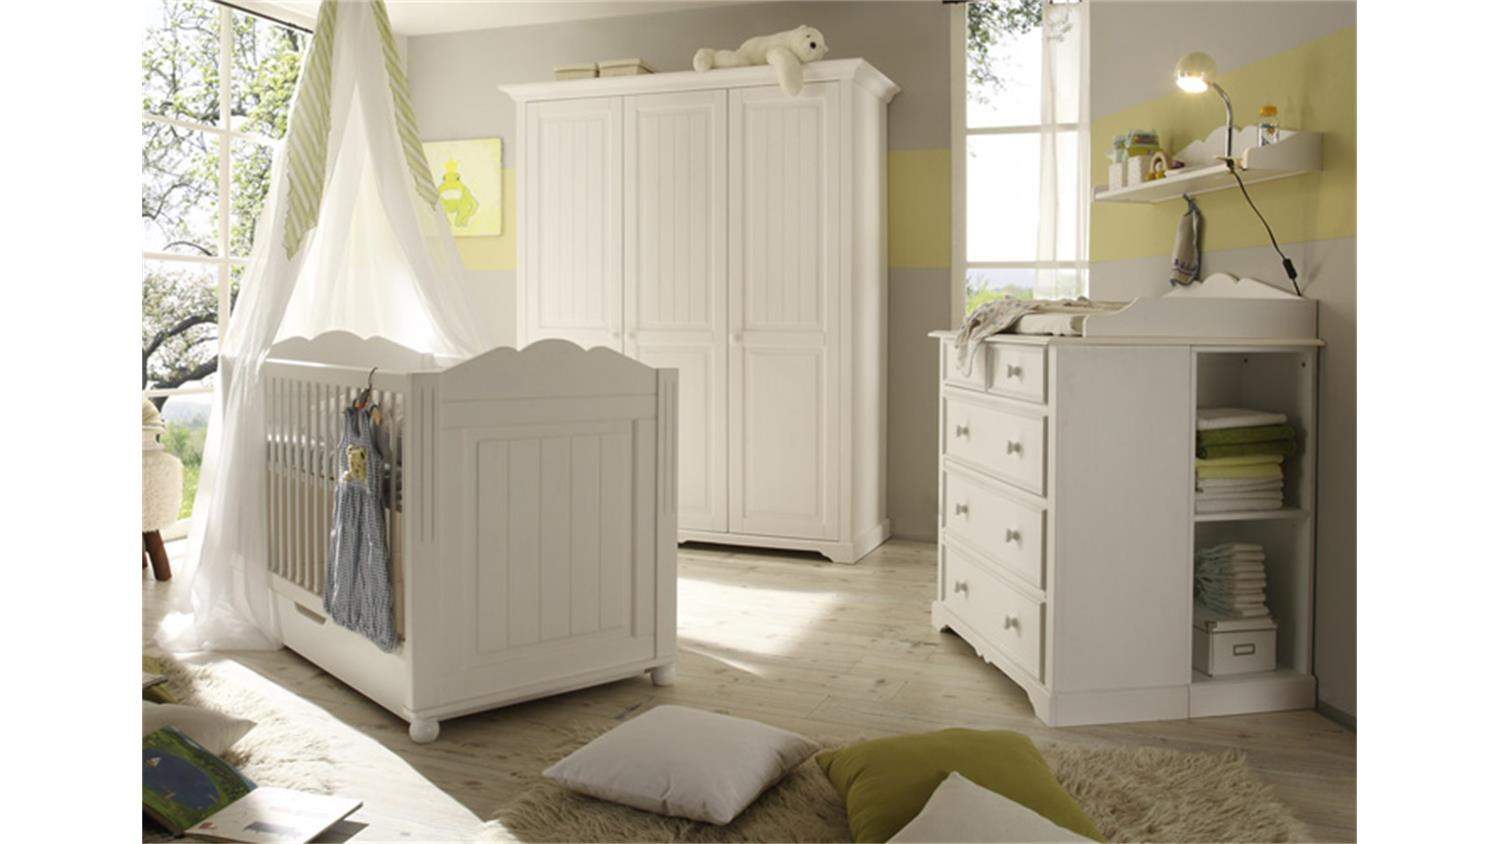 babyzimmer idee inneneinrichtung und m bel. Black Bedroom Furniture Sets. Home Design Ideas